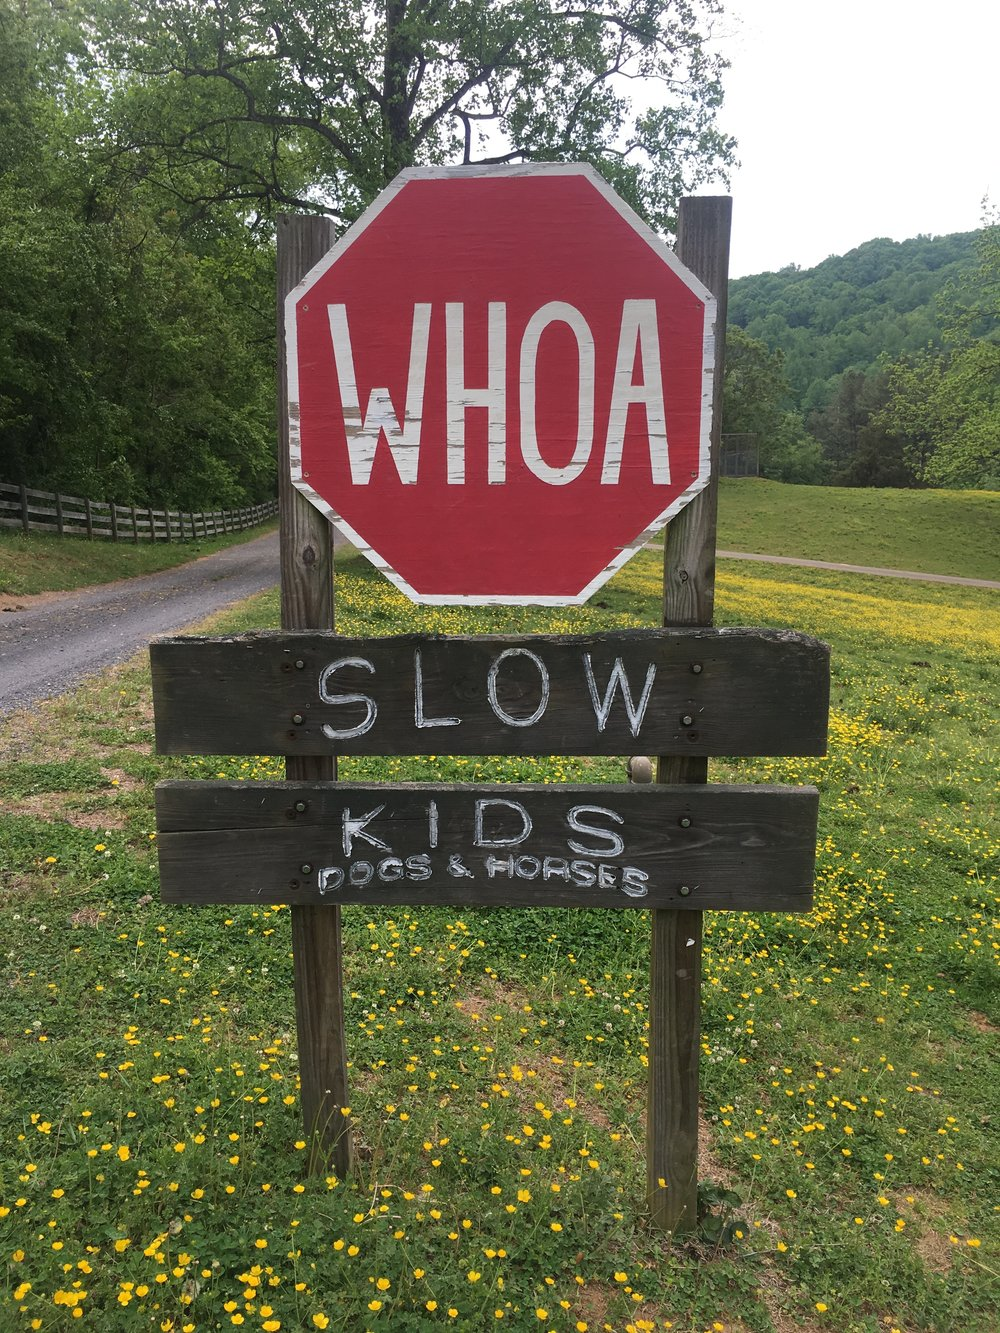 whoa slow kids sign.JPG